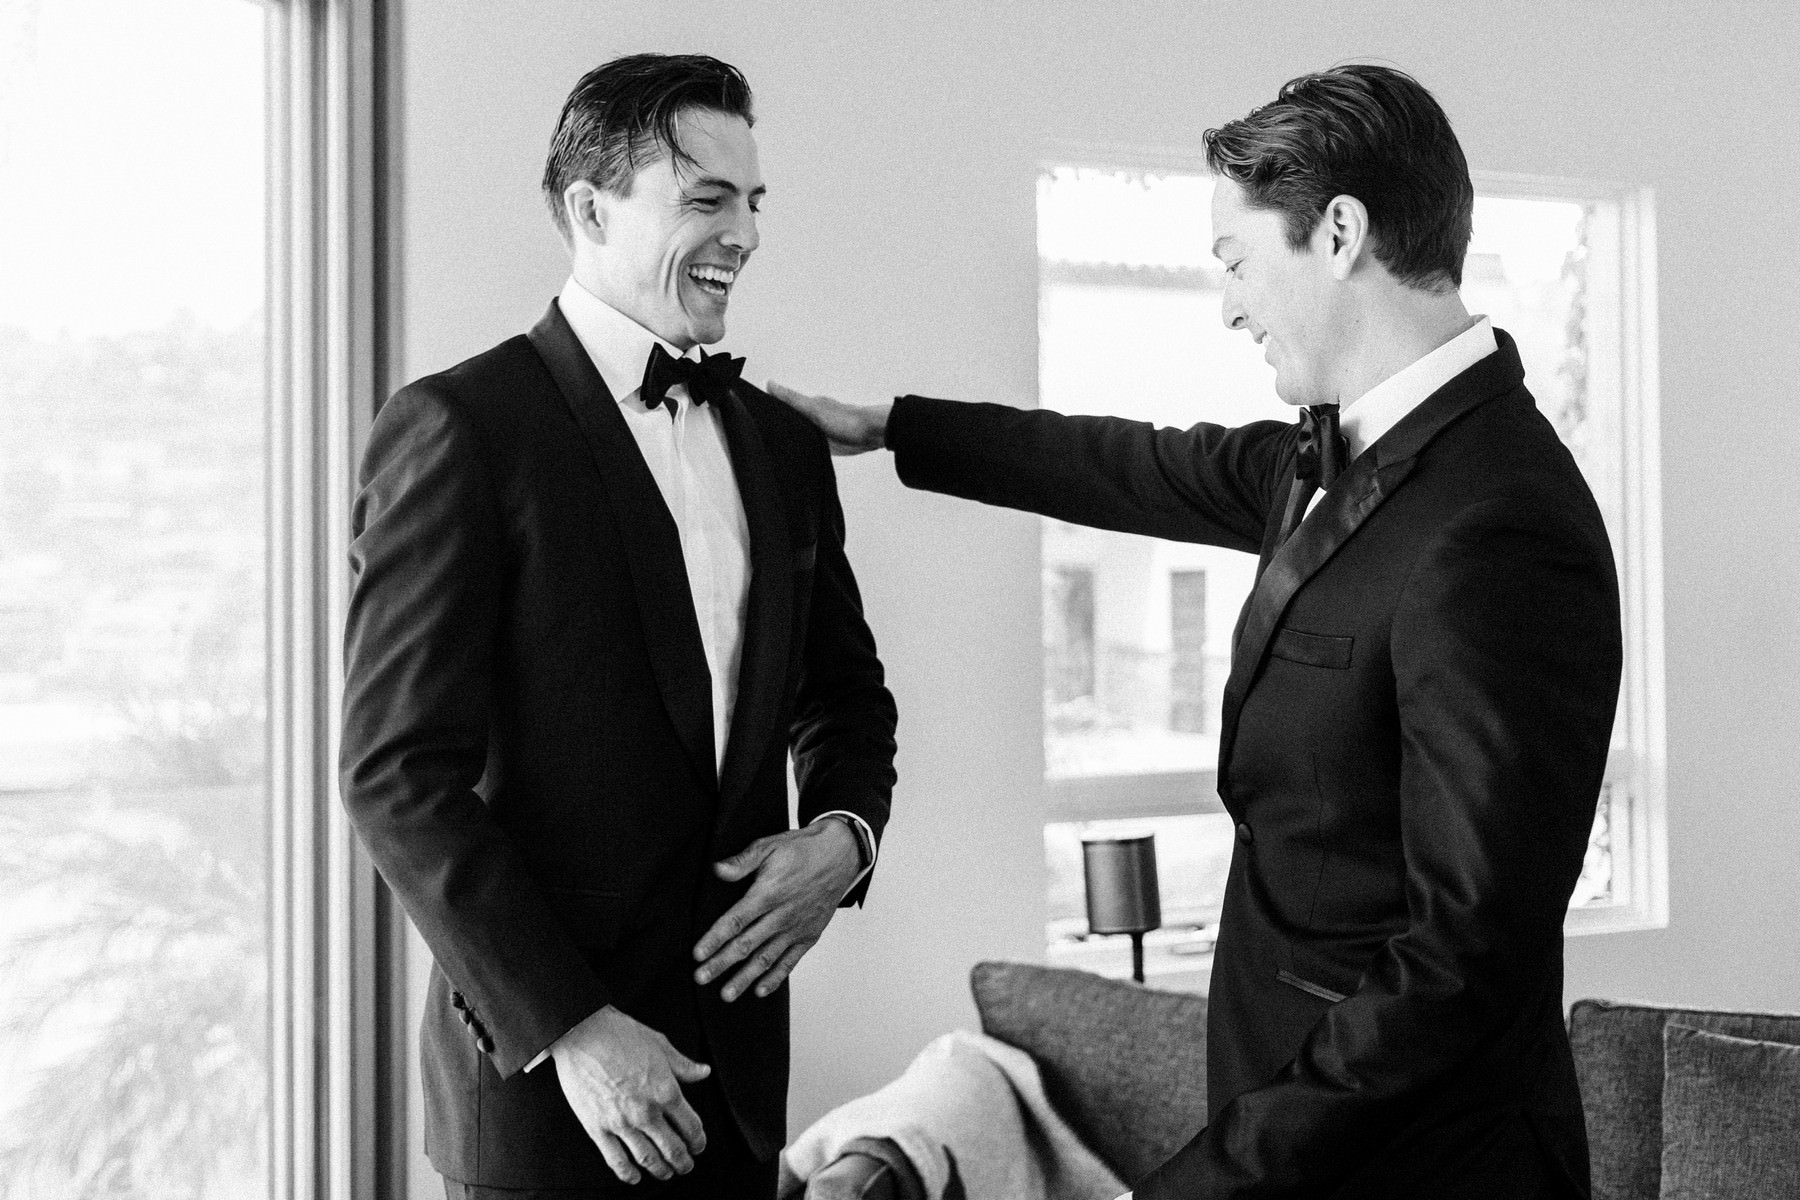 Groom and best man in their tuxedos - photo by John & Joseph